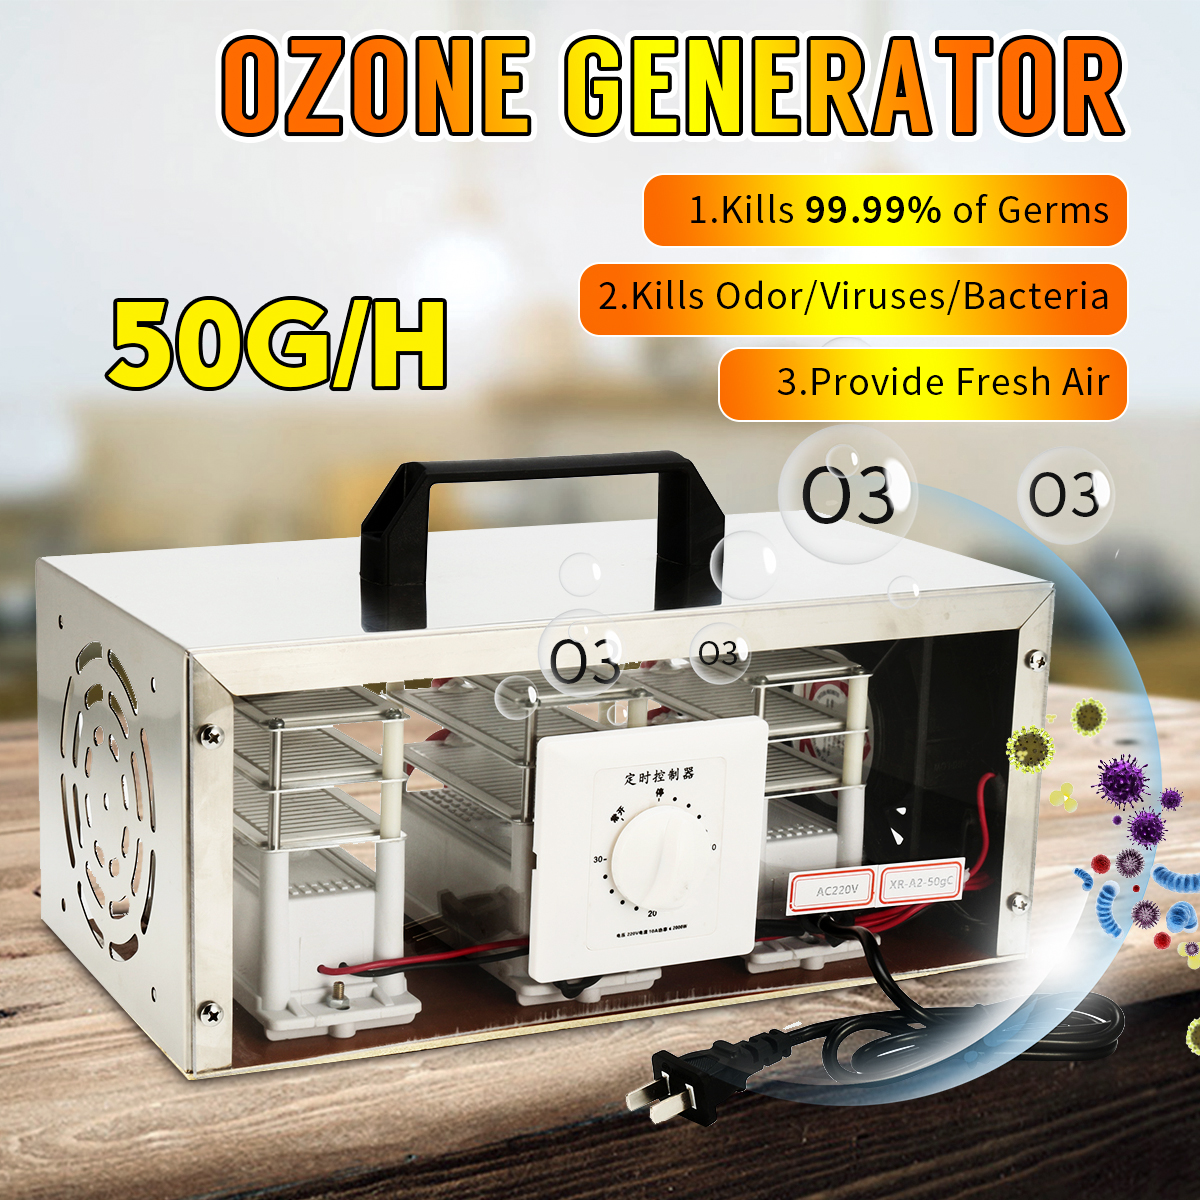 30g 50g/h 110V 220V Air Ozone Generator Air Purifier Sterilizer Ozonator Portable Ozonizer Cleaner Sterilizer With Timing Switch